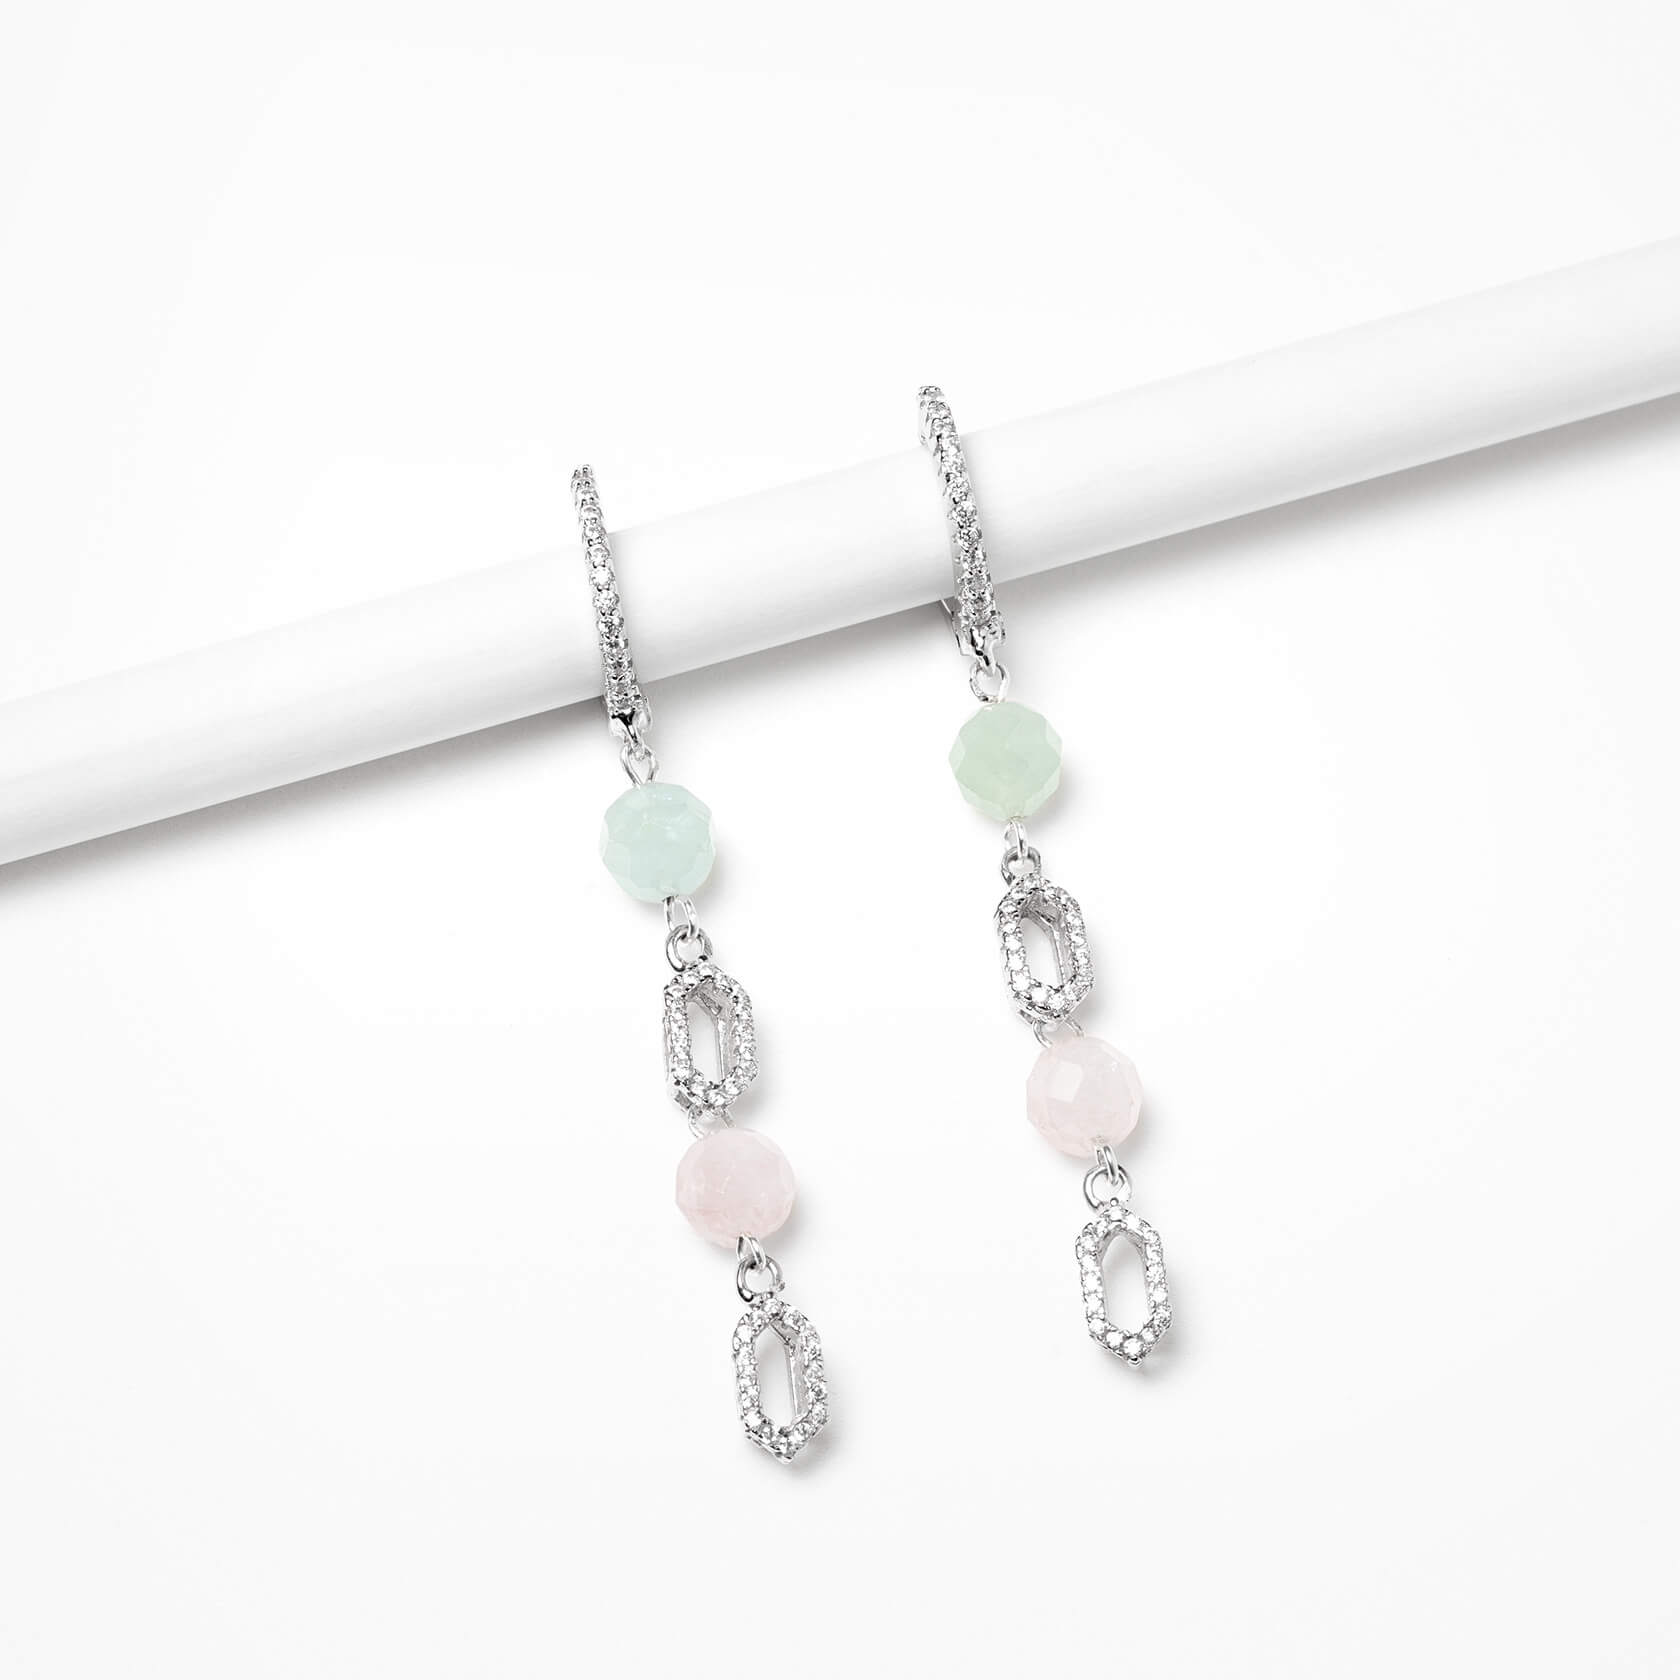 Hexagonal aquamarine earrings